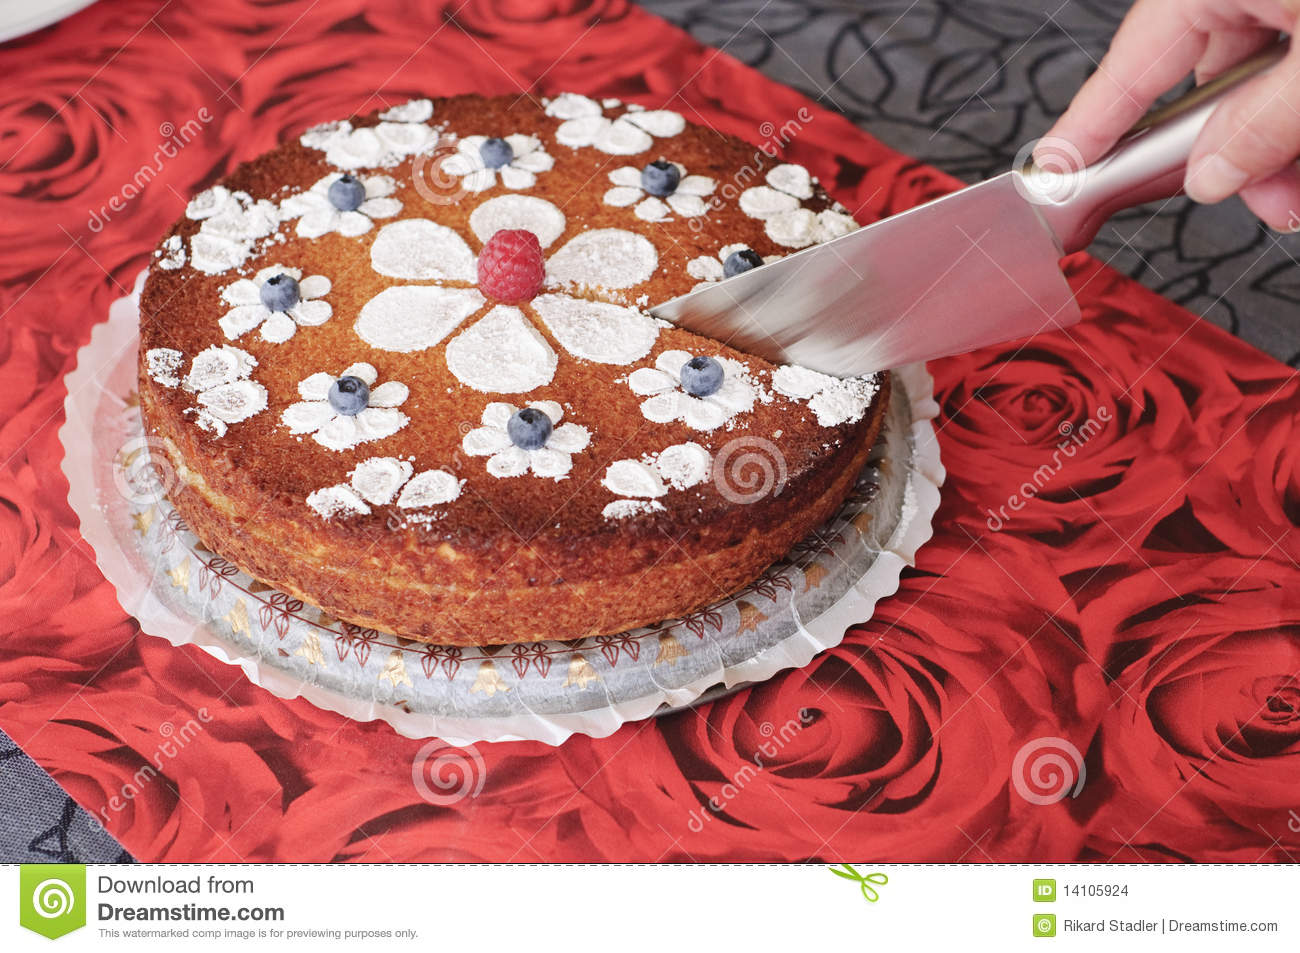 Hand holding knife and cutting a beautiful cake.